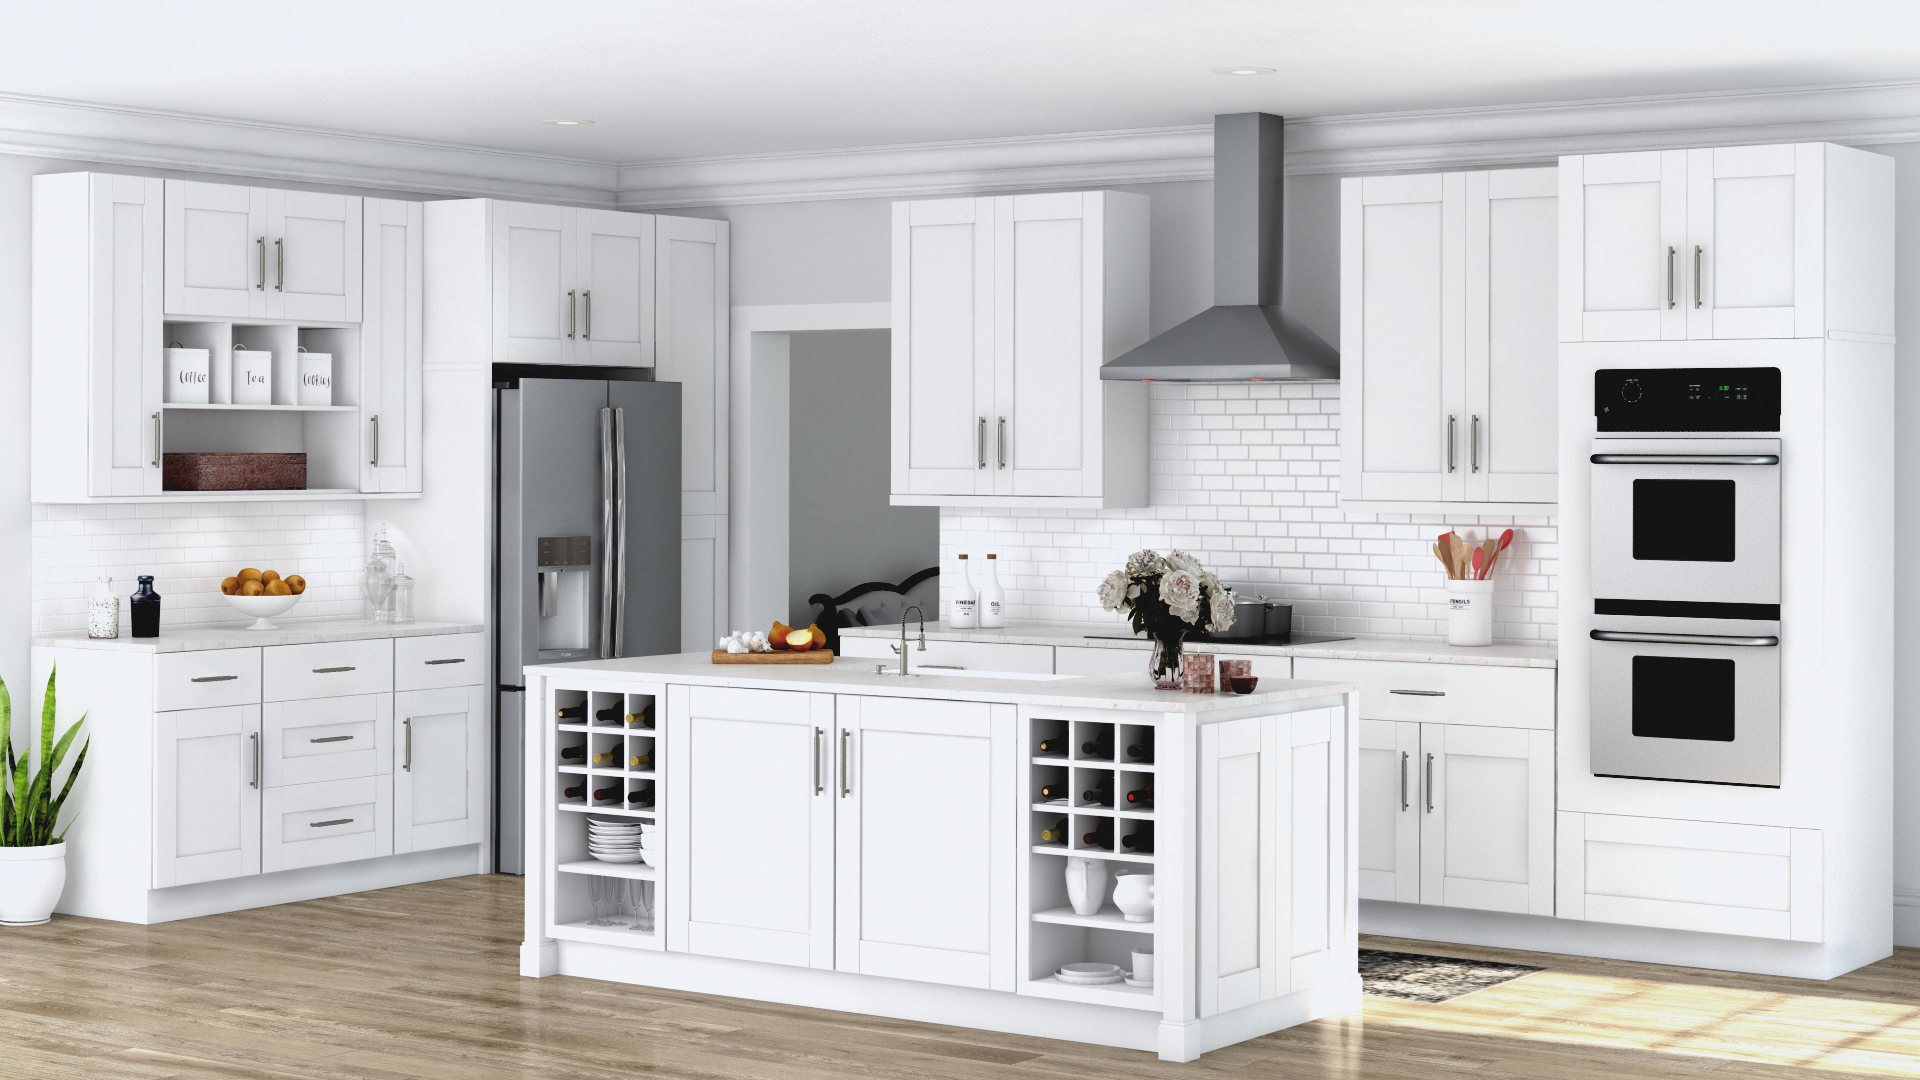 Shaker White Coordinating Cabinet Hardware Kitchen The